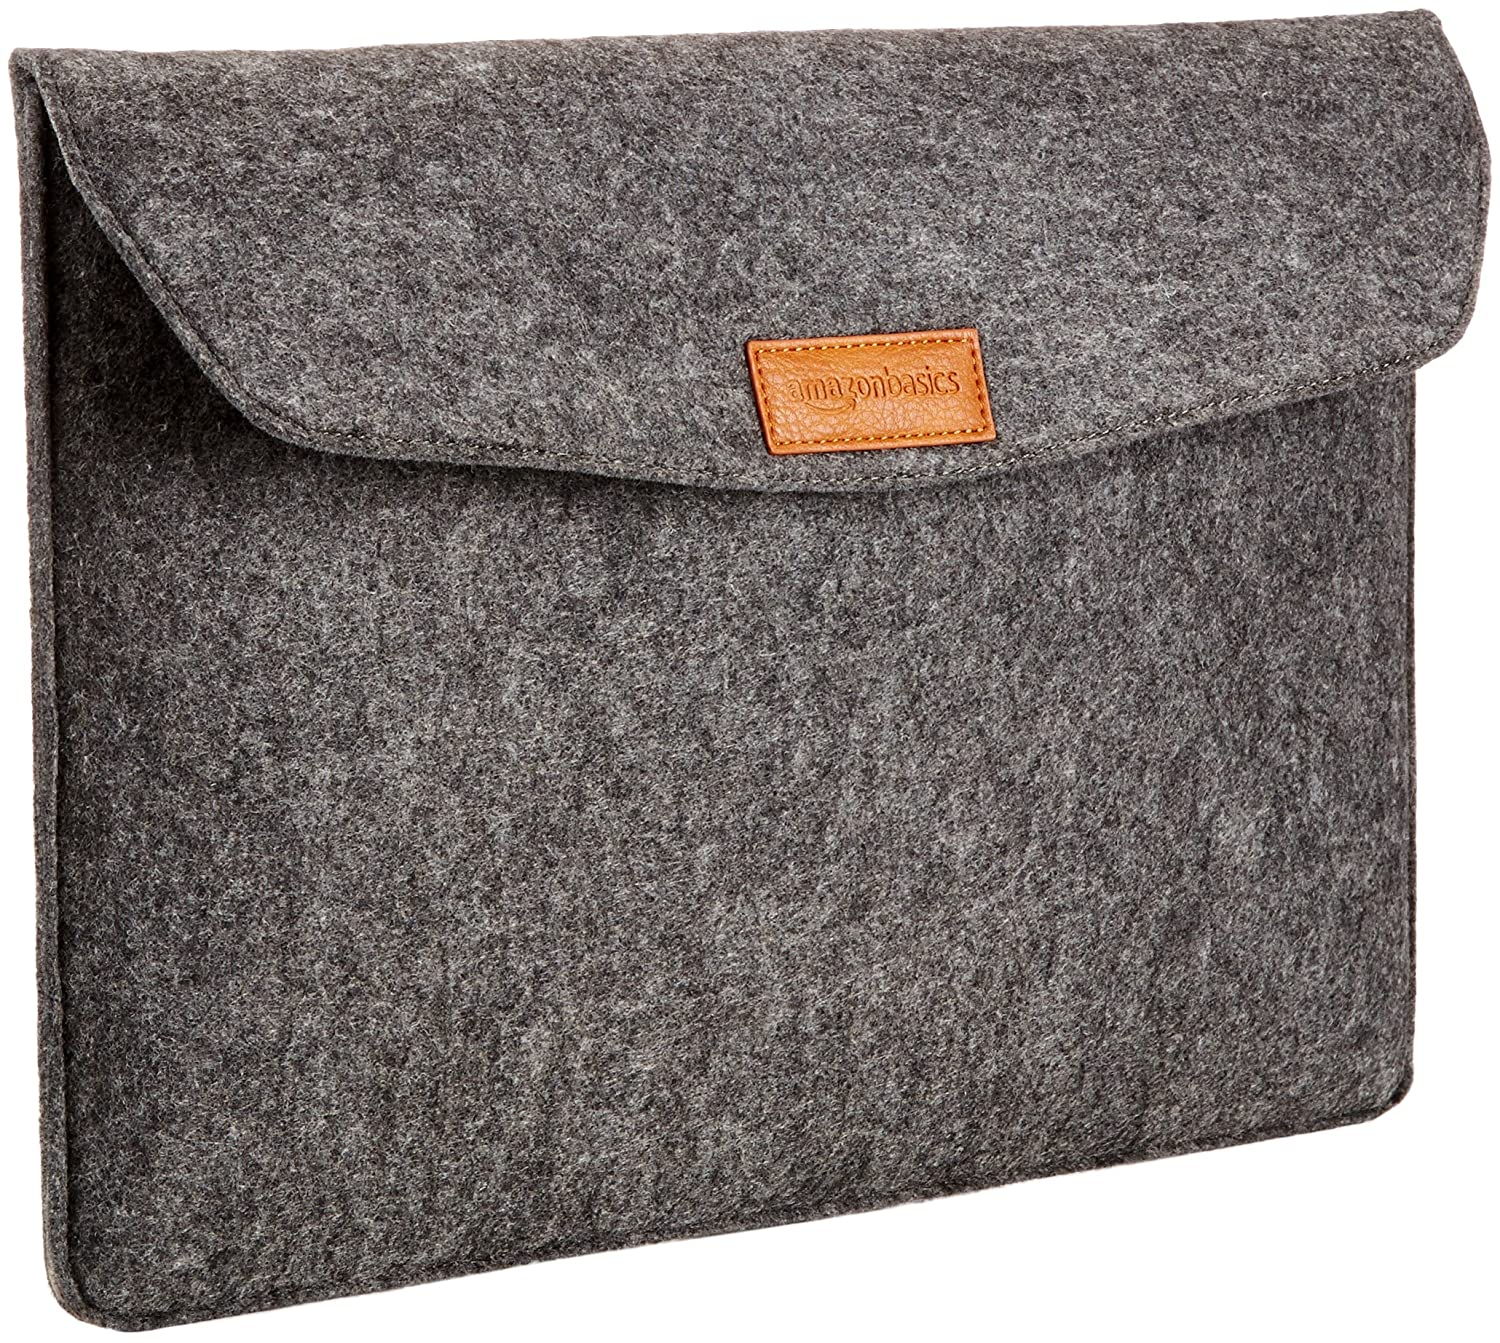 AmazonBasics 15.4-Inch Felt Laptop Sleeve - Charcoal